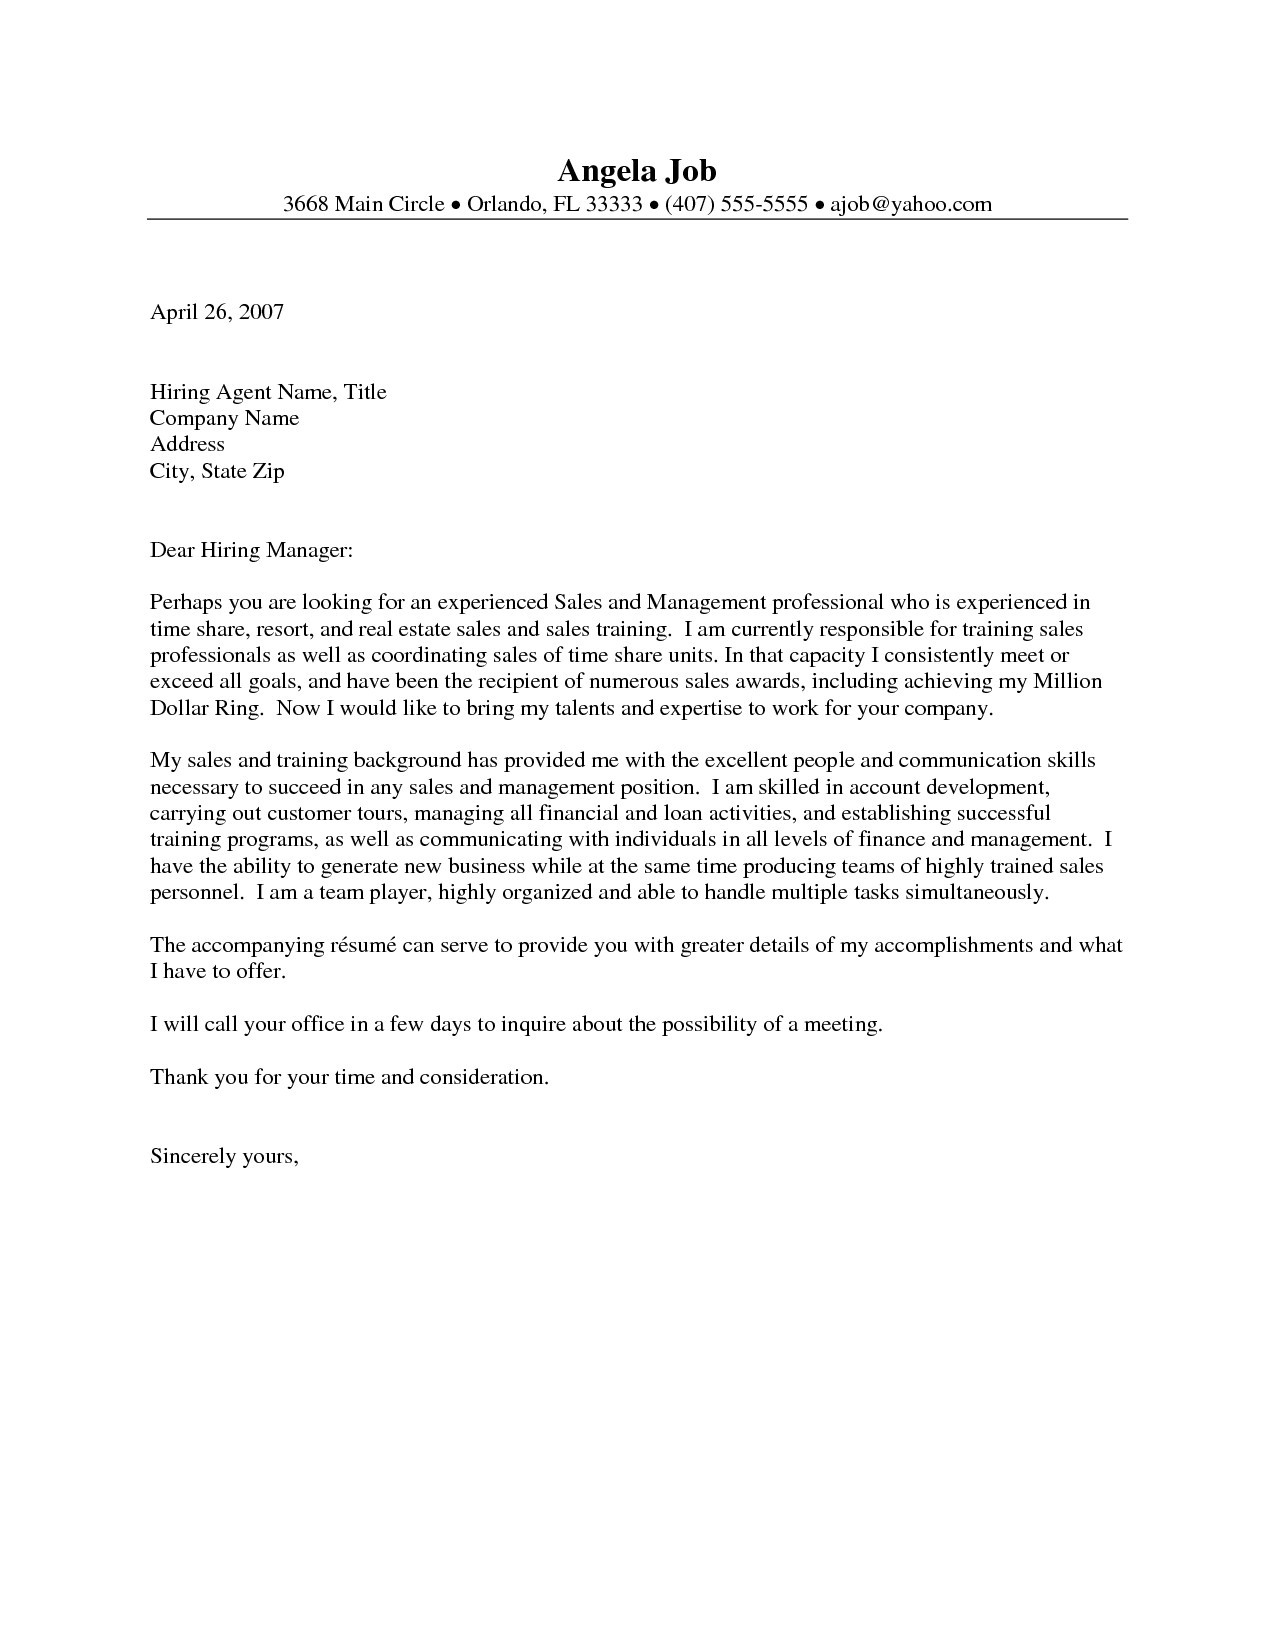 real estate offer letter template example-Cover Letter Sample for Real Estate Job New Sample Cover Letter for Real Estate Job Valid 19-g